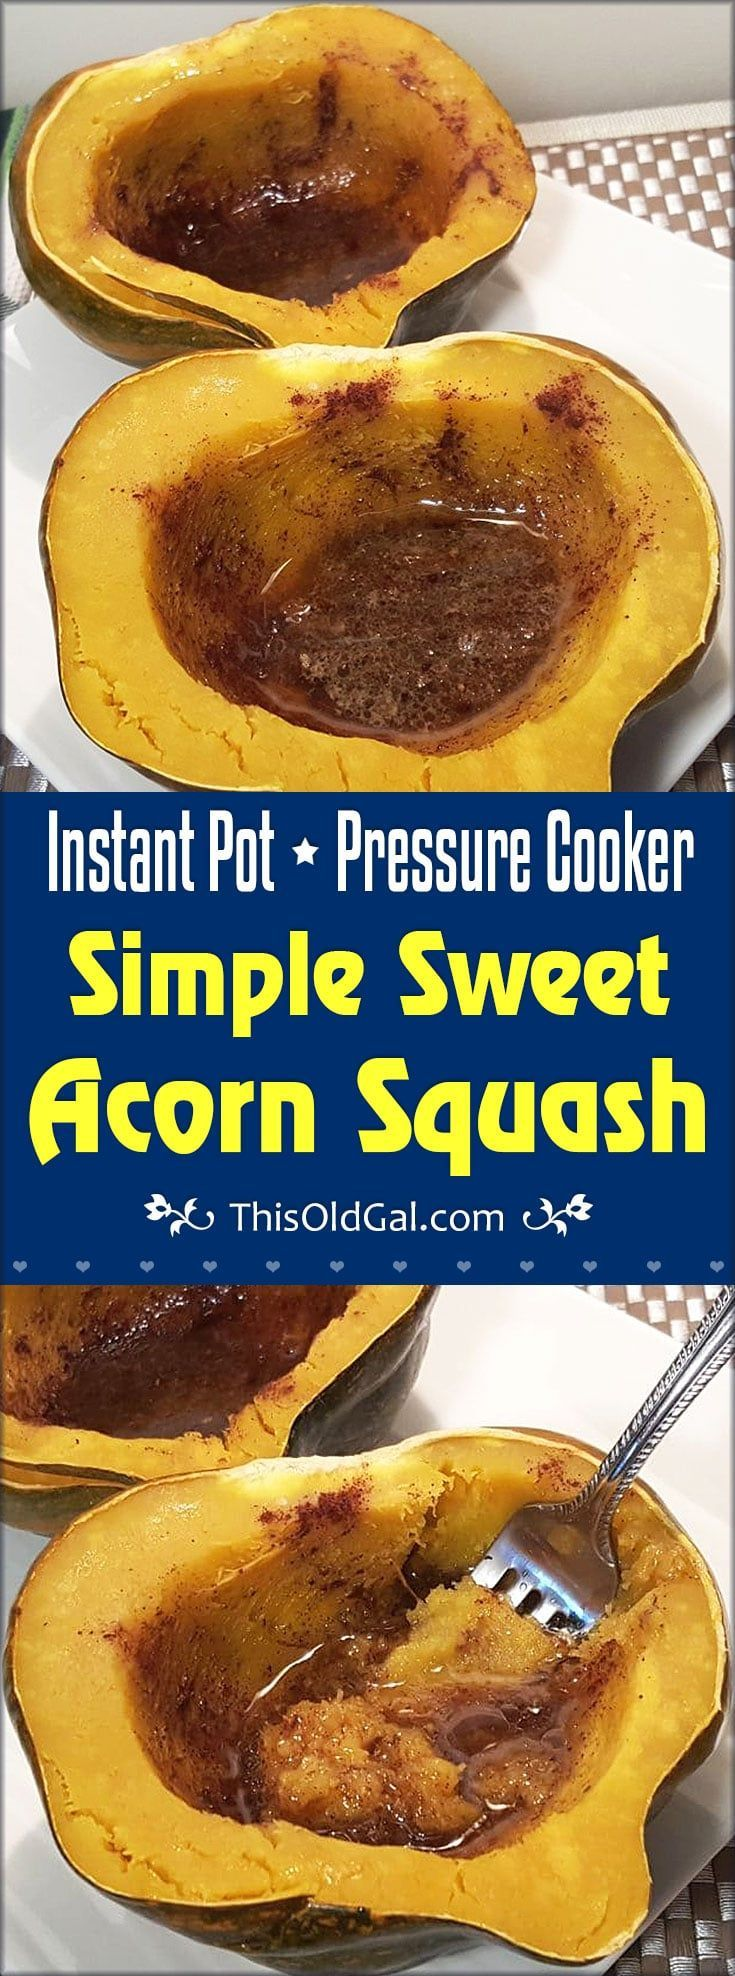 Pressure Cooker Simple Sweet Acorn Squash is a versatile & healthy winter vegetable that can be sweetened or stuffed with meat and rice. via @thisoldgalcooks